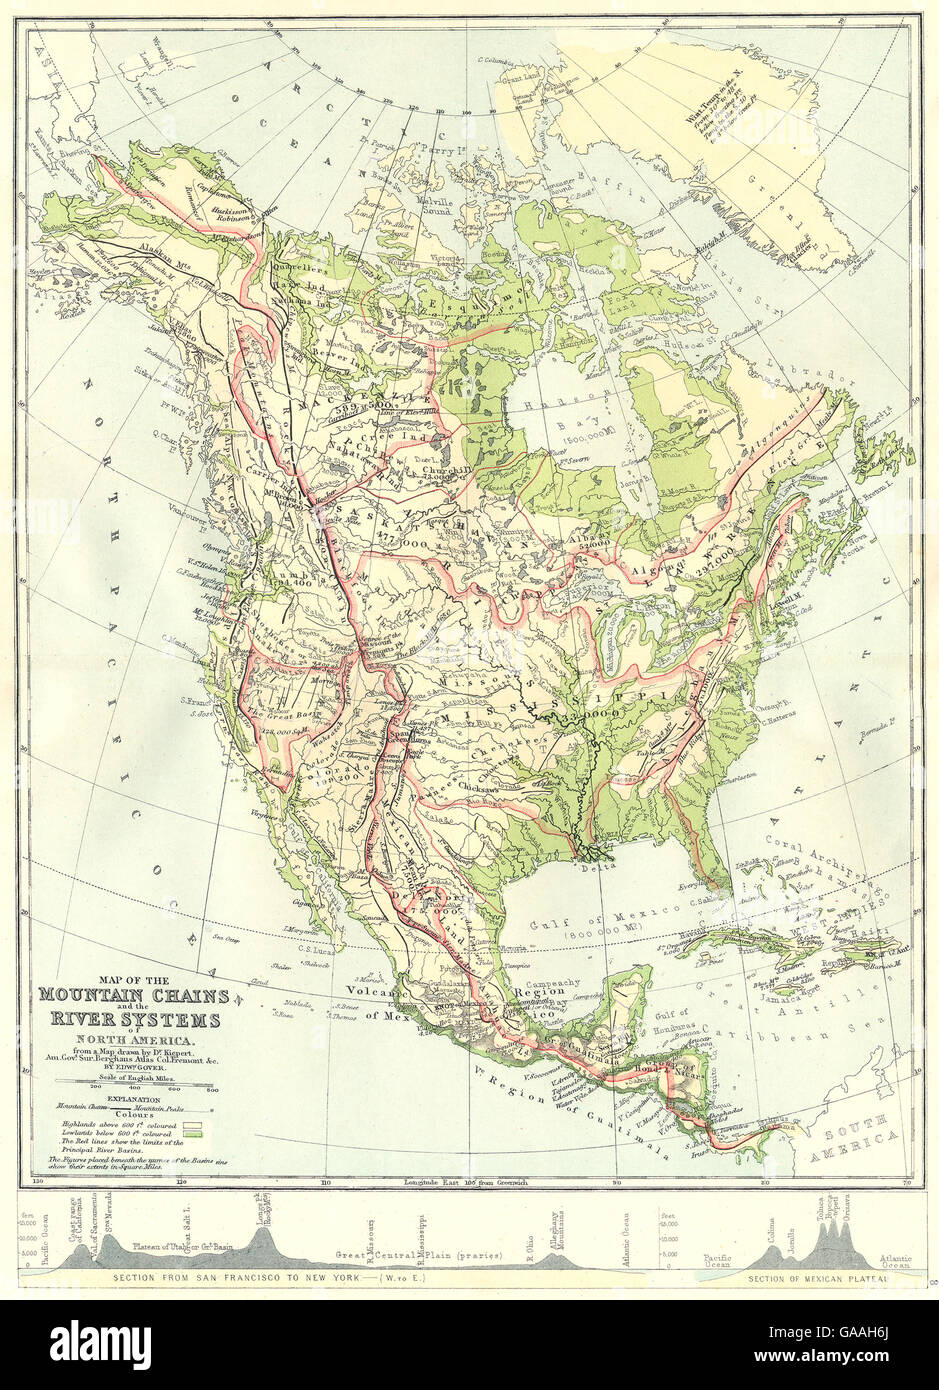 North America Map With Rivers And Mountains.North America Map Mountain Chains River Systems Of 1881 Stock